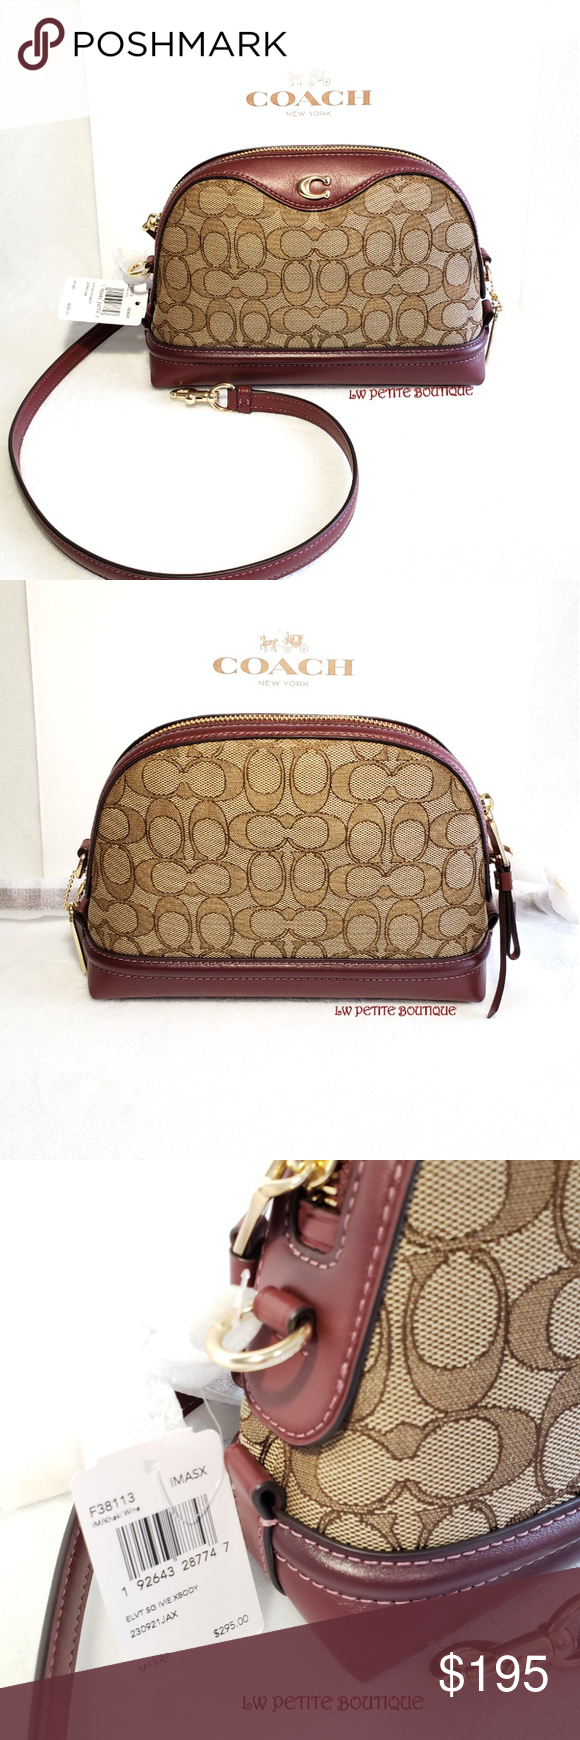 Coach Signature Ivie Crossbody Signature jacquard and refined calf leather  Inside multifunction pocket Zip closure, fabric lining Detachable strap  with 21 ... 255a8b8578